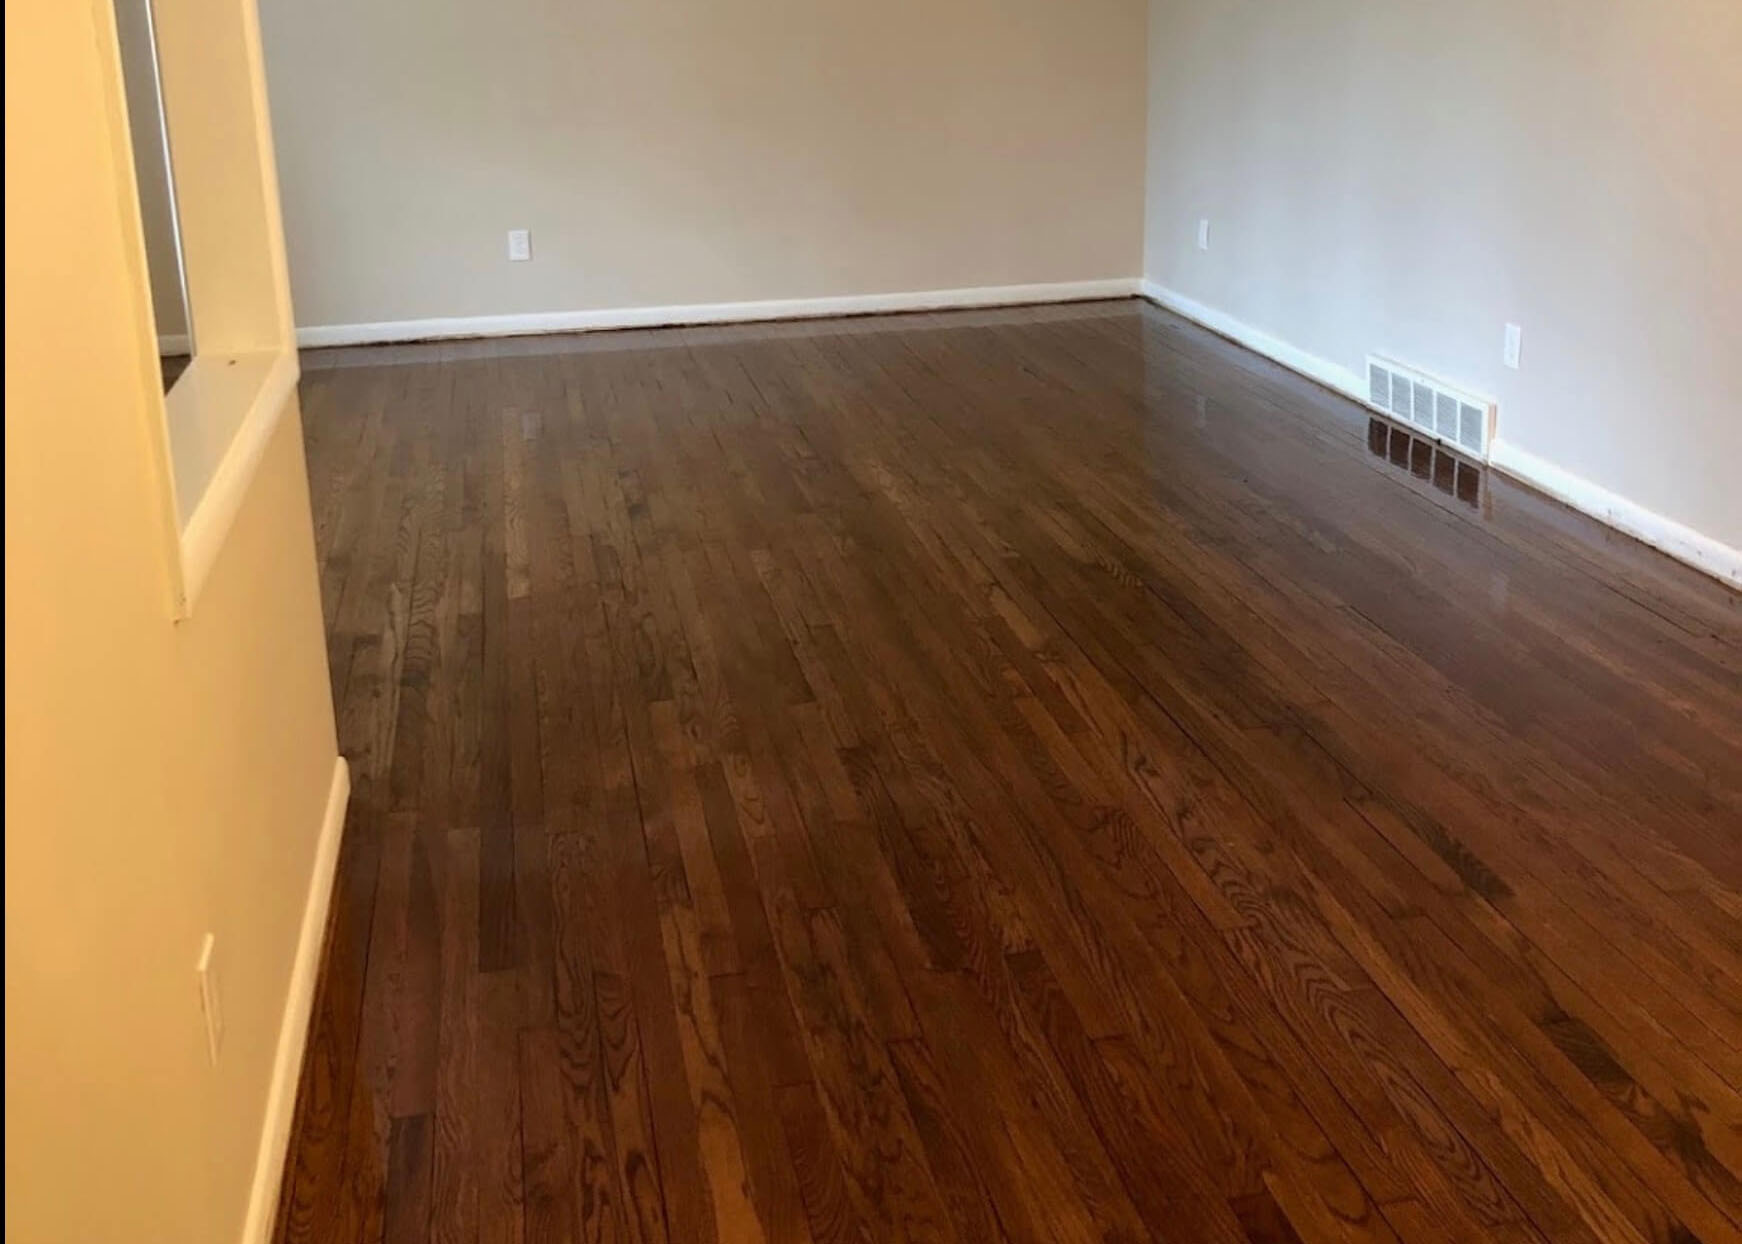 resurfacing wood flooring in huntsville